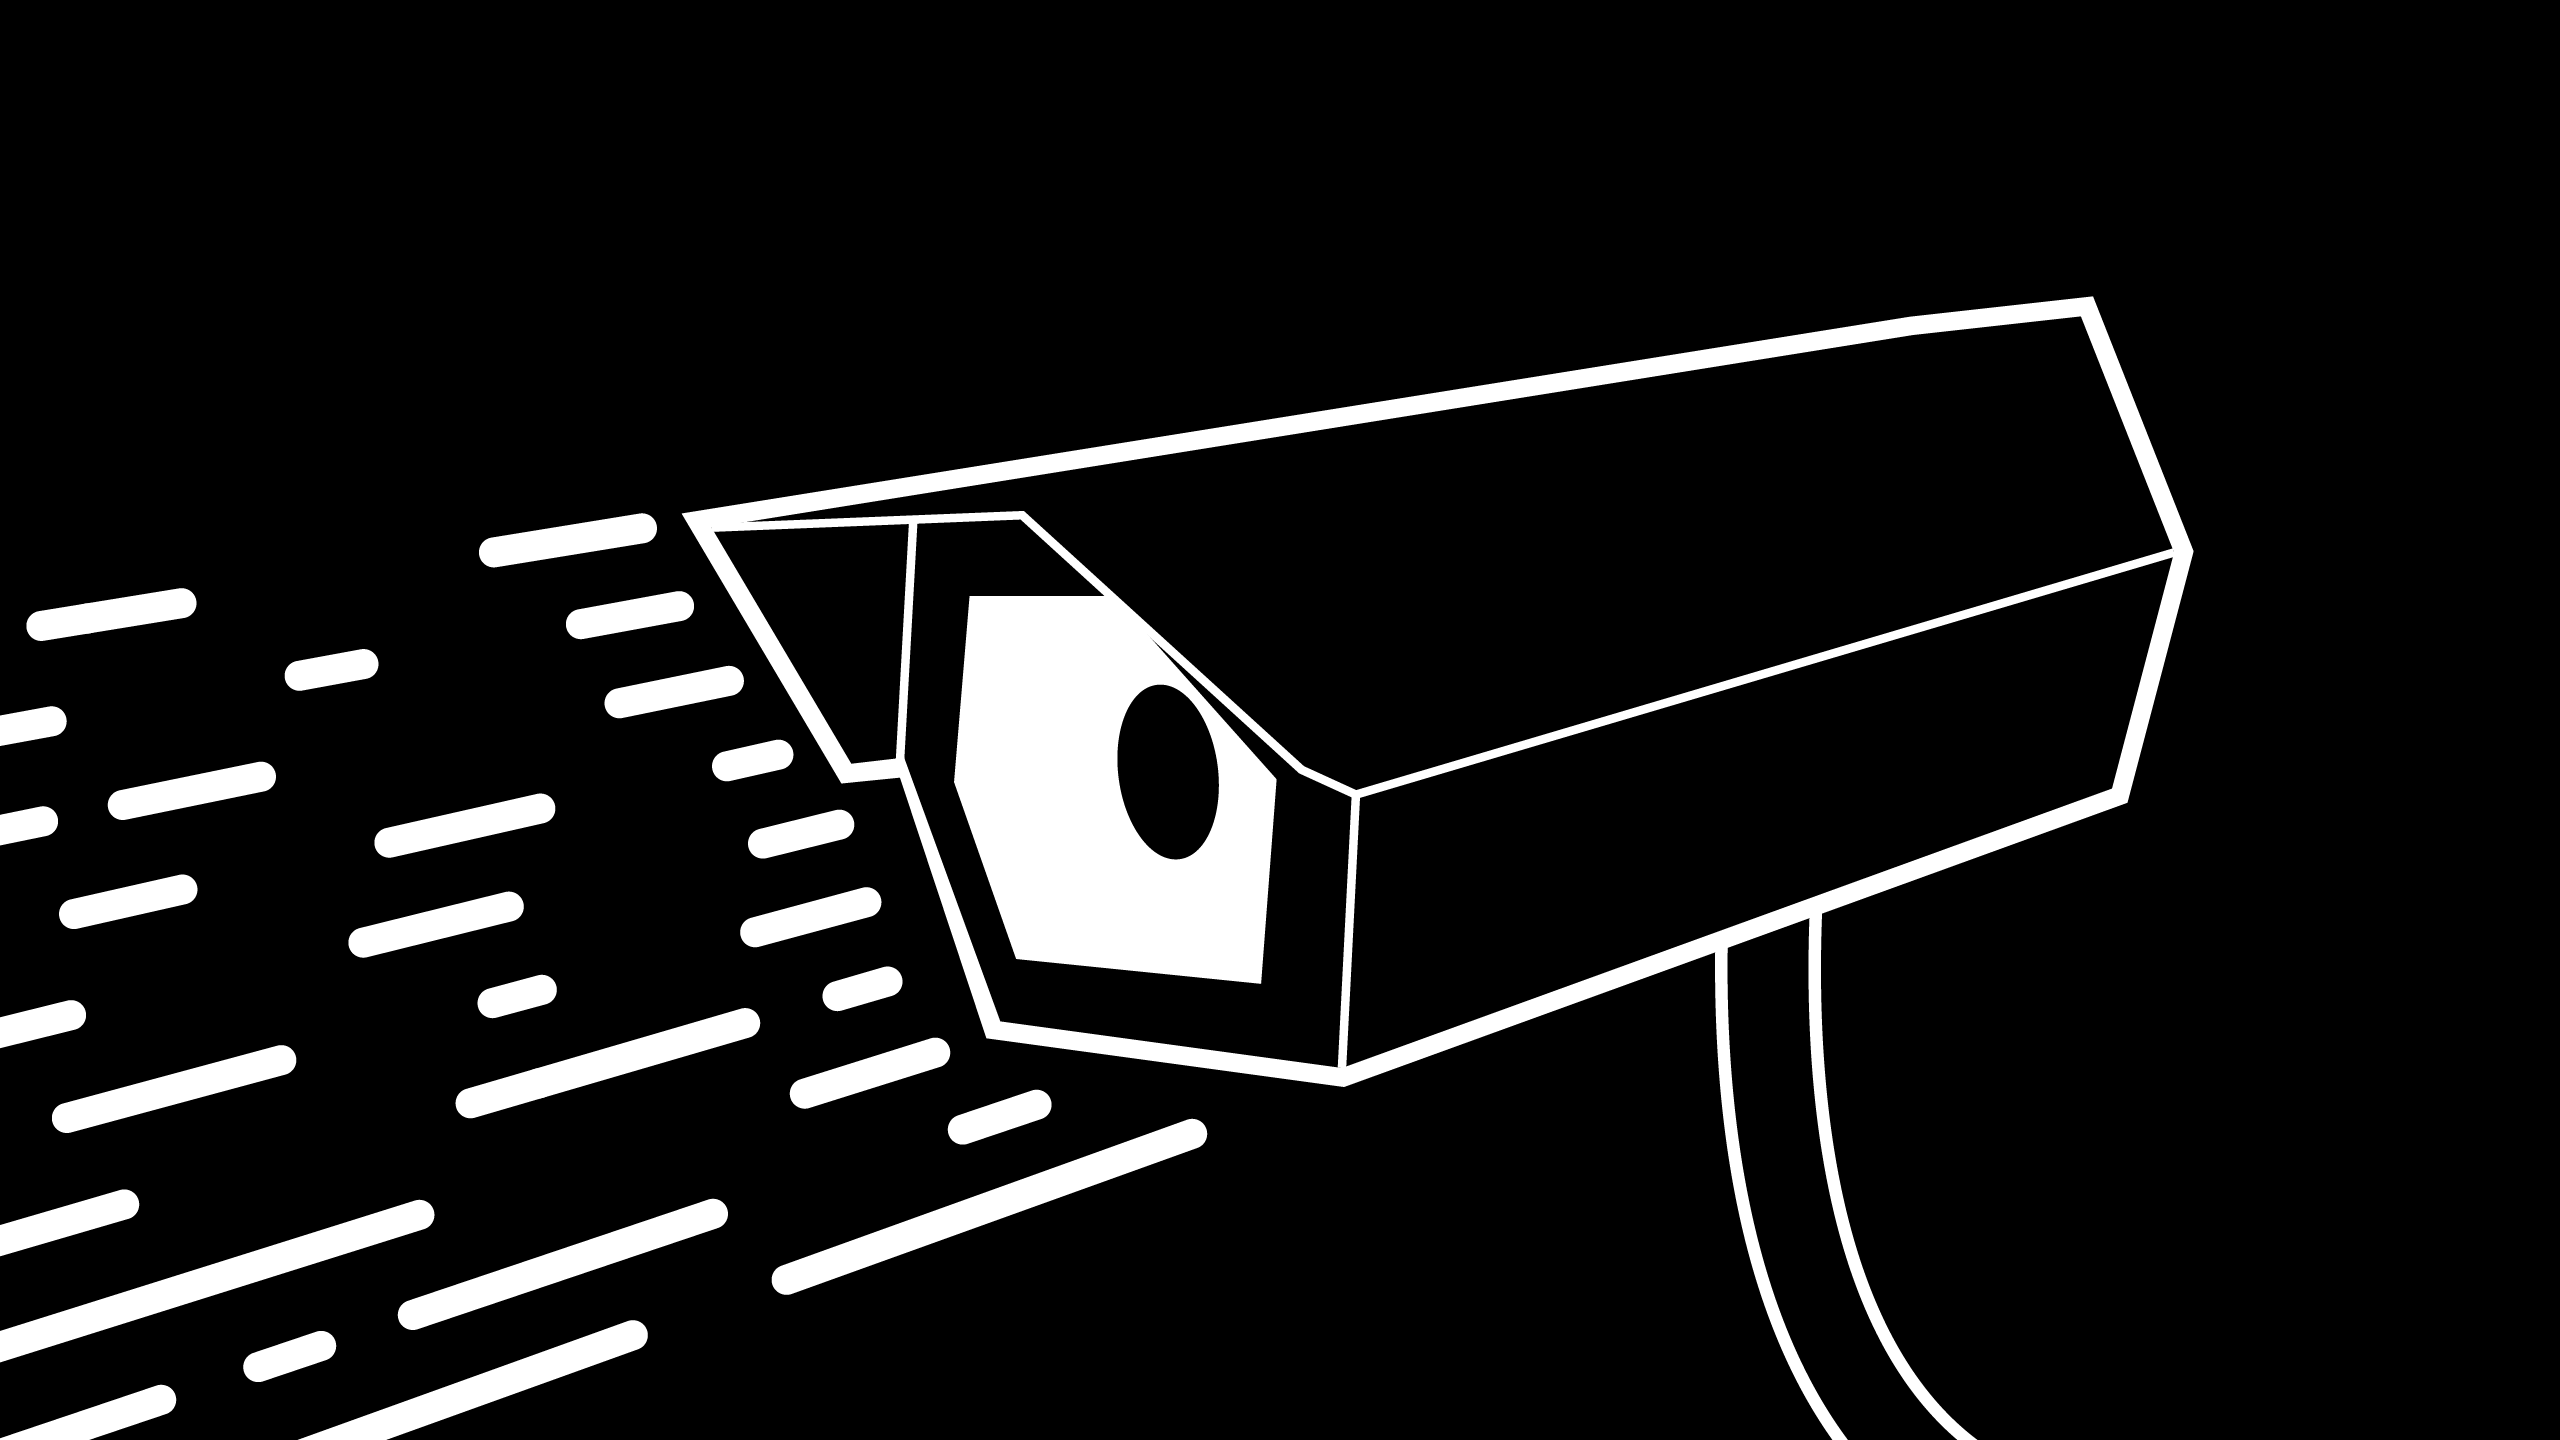 The House just renewed a warrantless surveillance law without any privacy reform